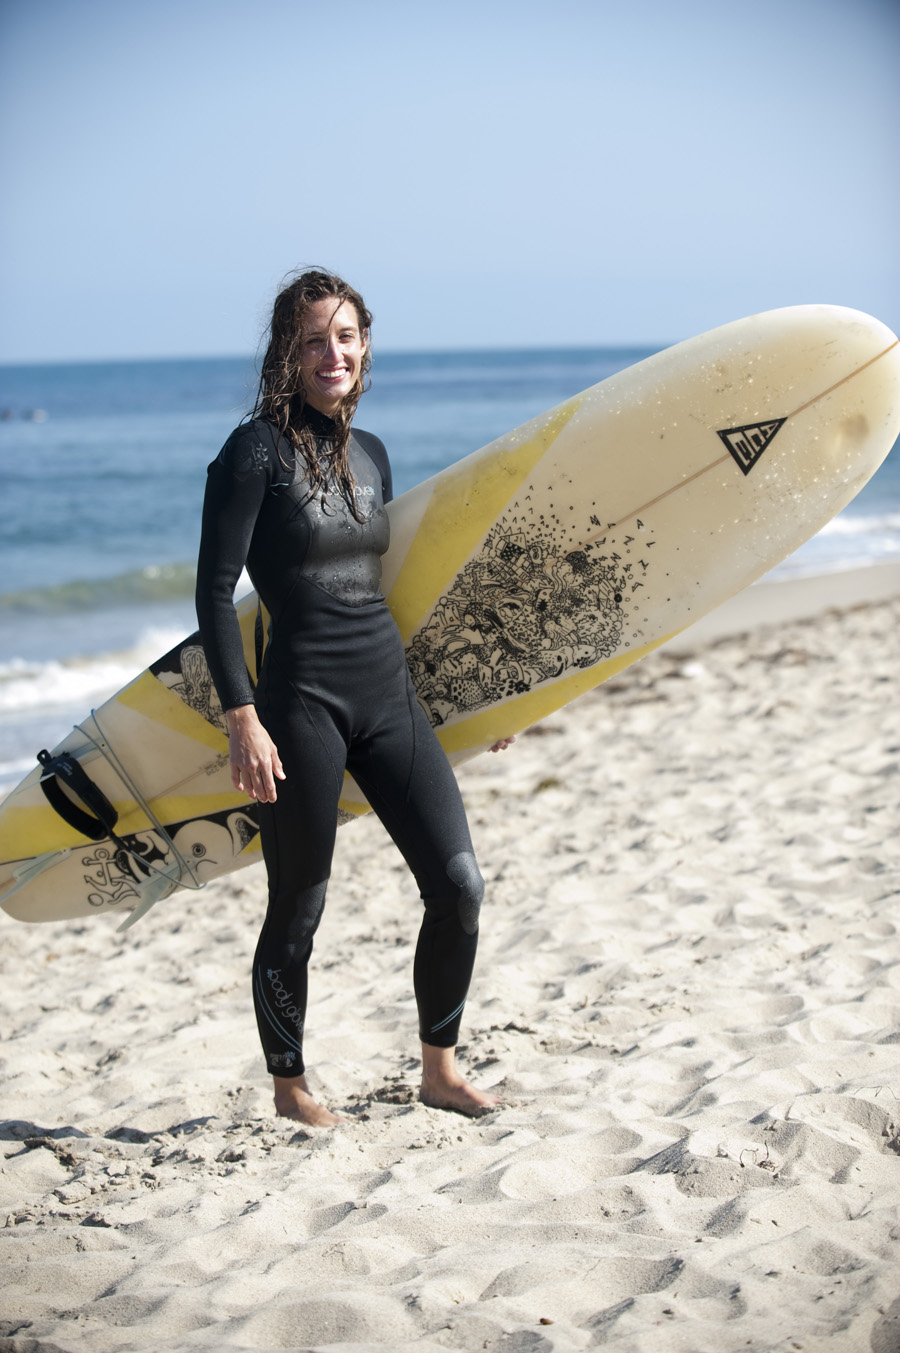 Megan Johnston wears a Body Glove wetsuit while surfing in Malibu.